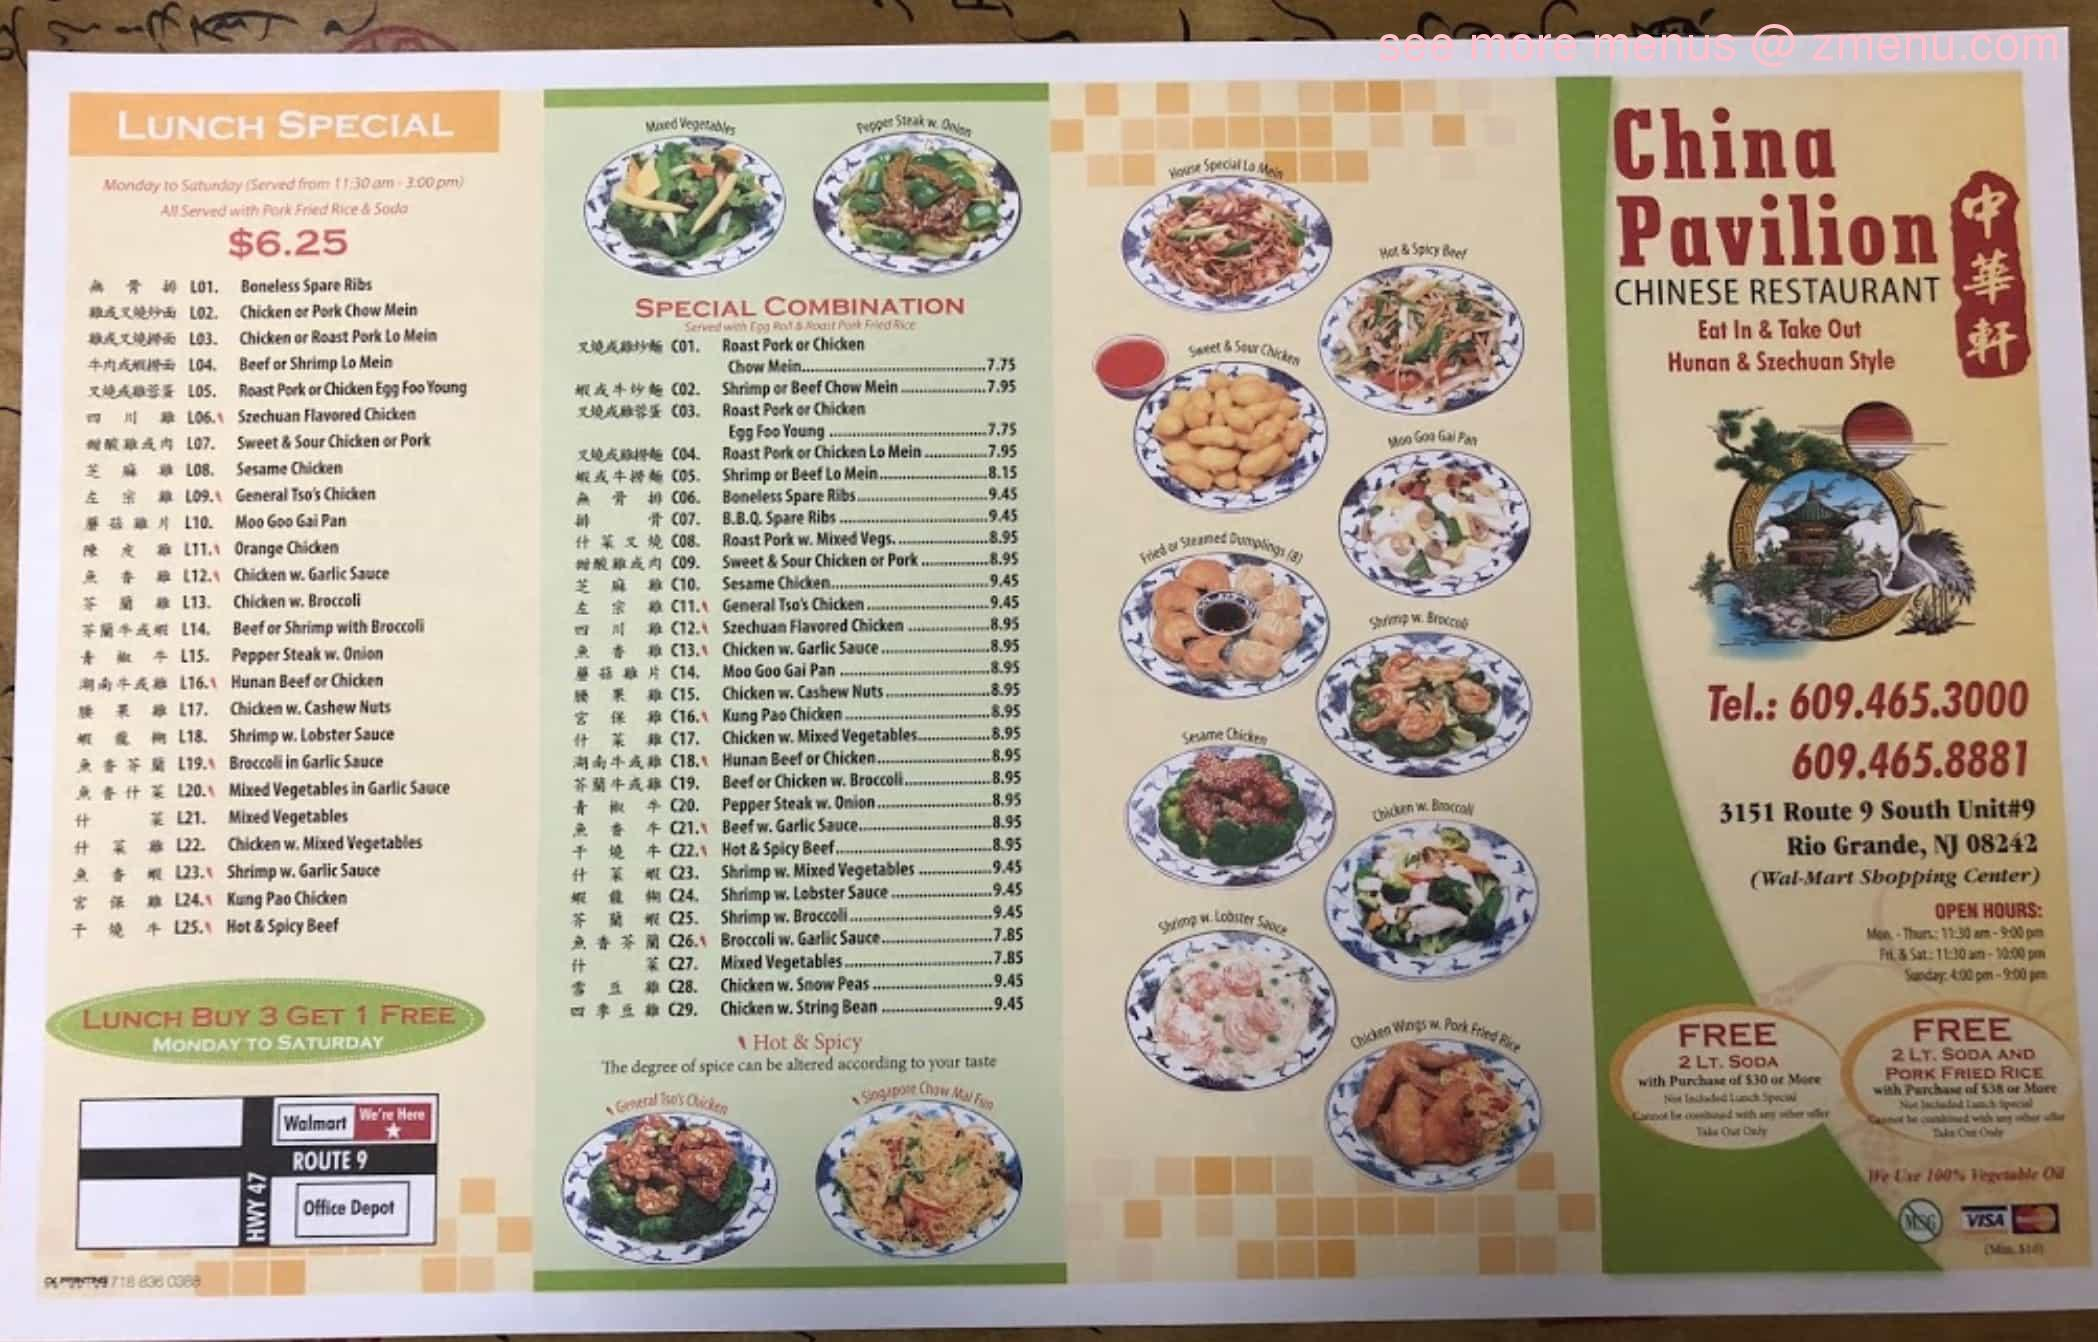 Online Menu Of China Pavilion Restaurant Rio Grande New Jersey